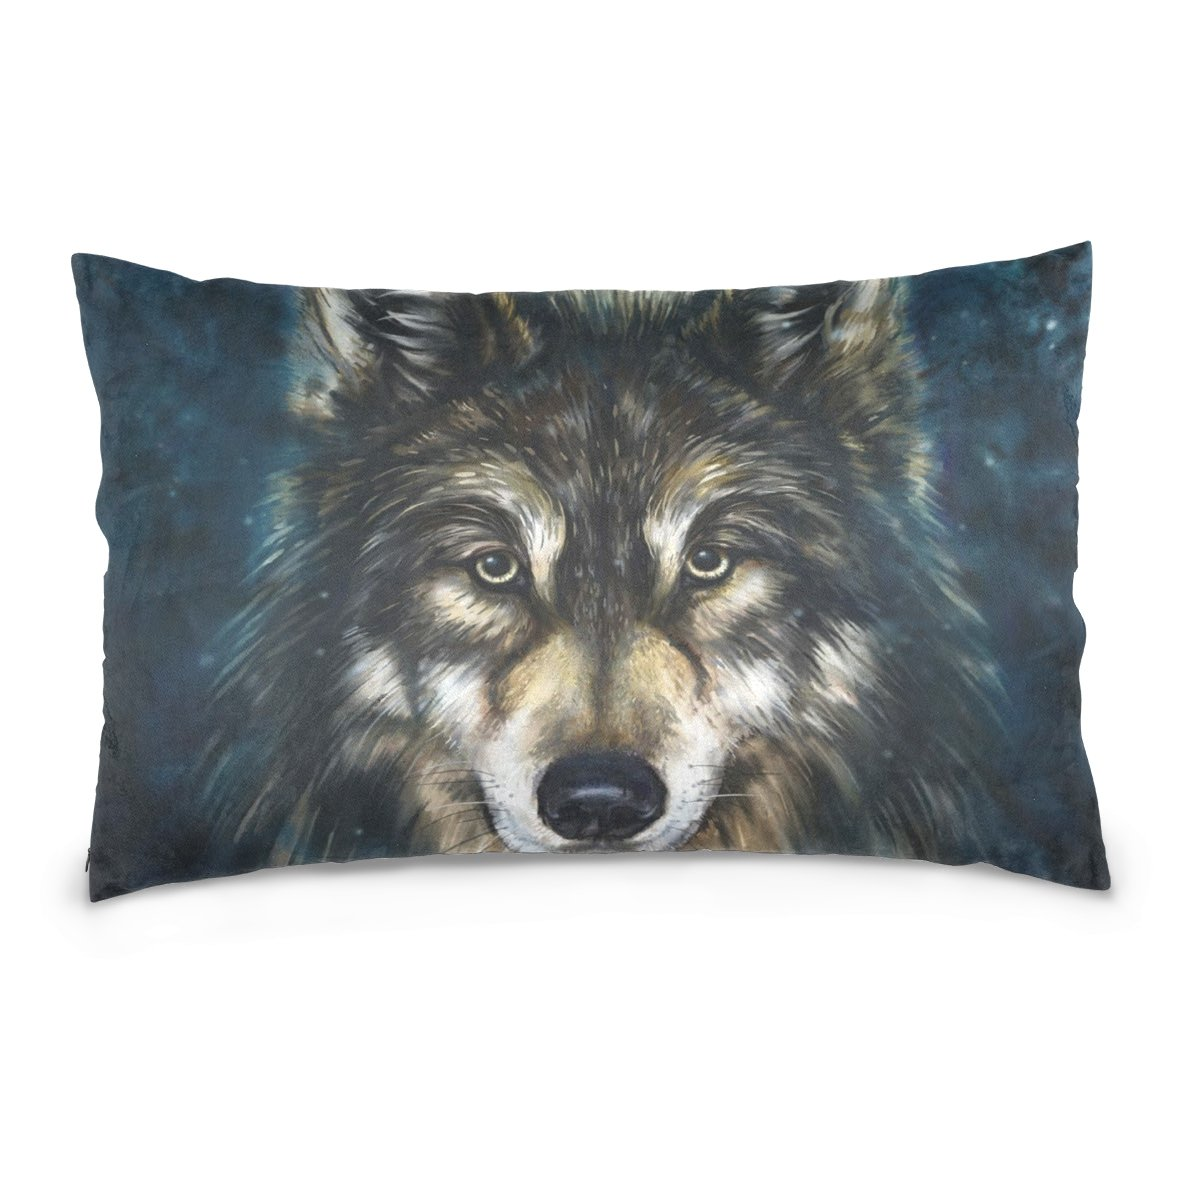 THENAHOME Pillow Covers Pillow Protectors Bed Bug Dust Mite Resistant Standard Pillow Cases Cotton Sateen Allergy Proof Soft Quality Covers with Wild Animal Art Wolf for Bedding